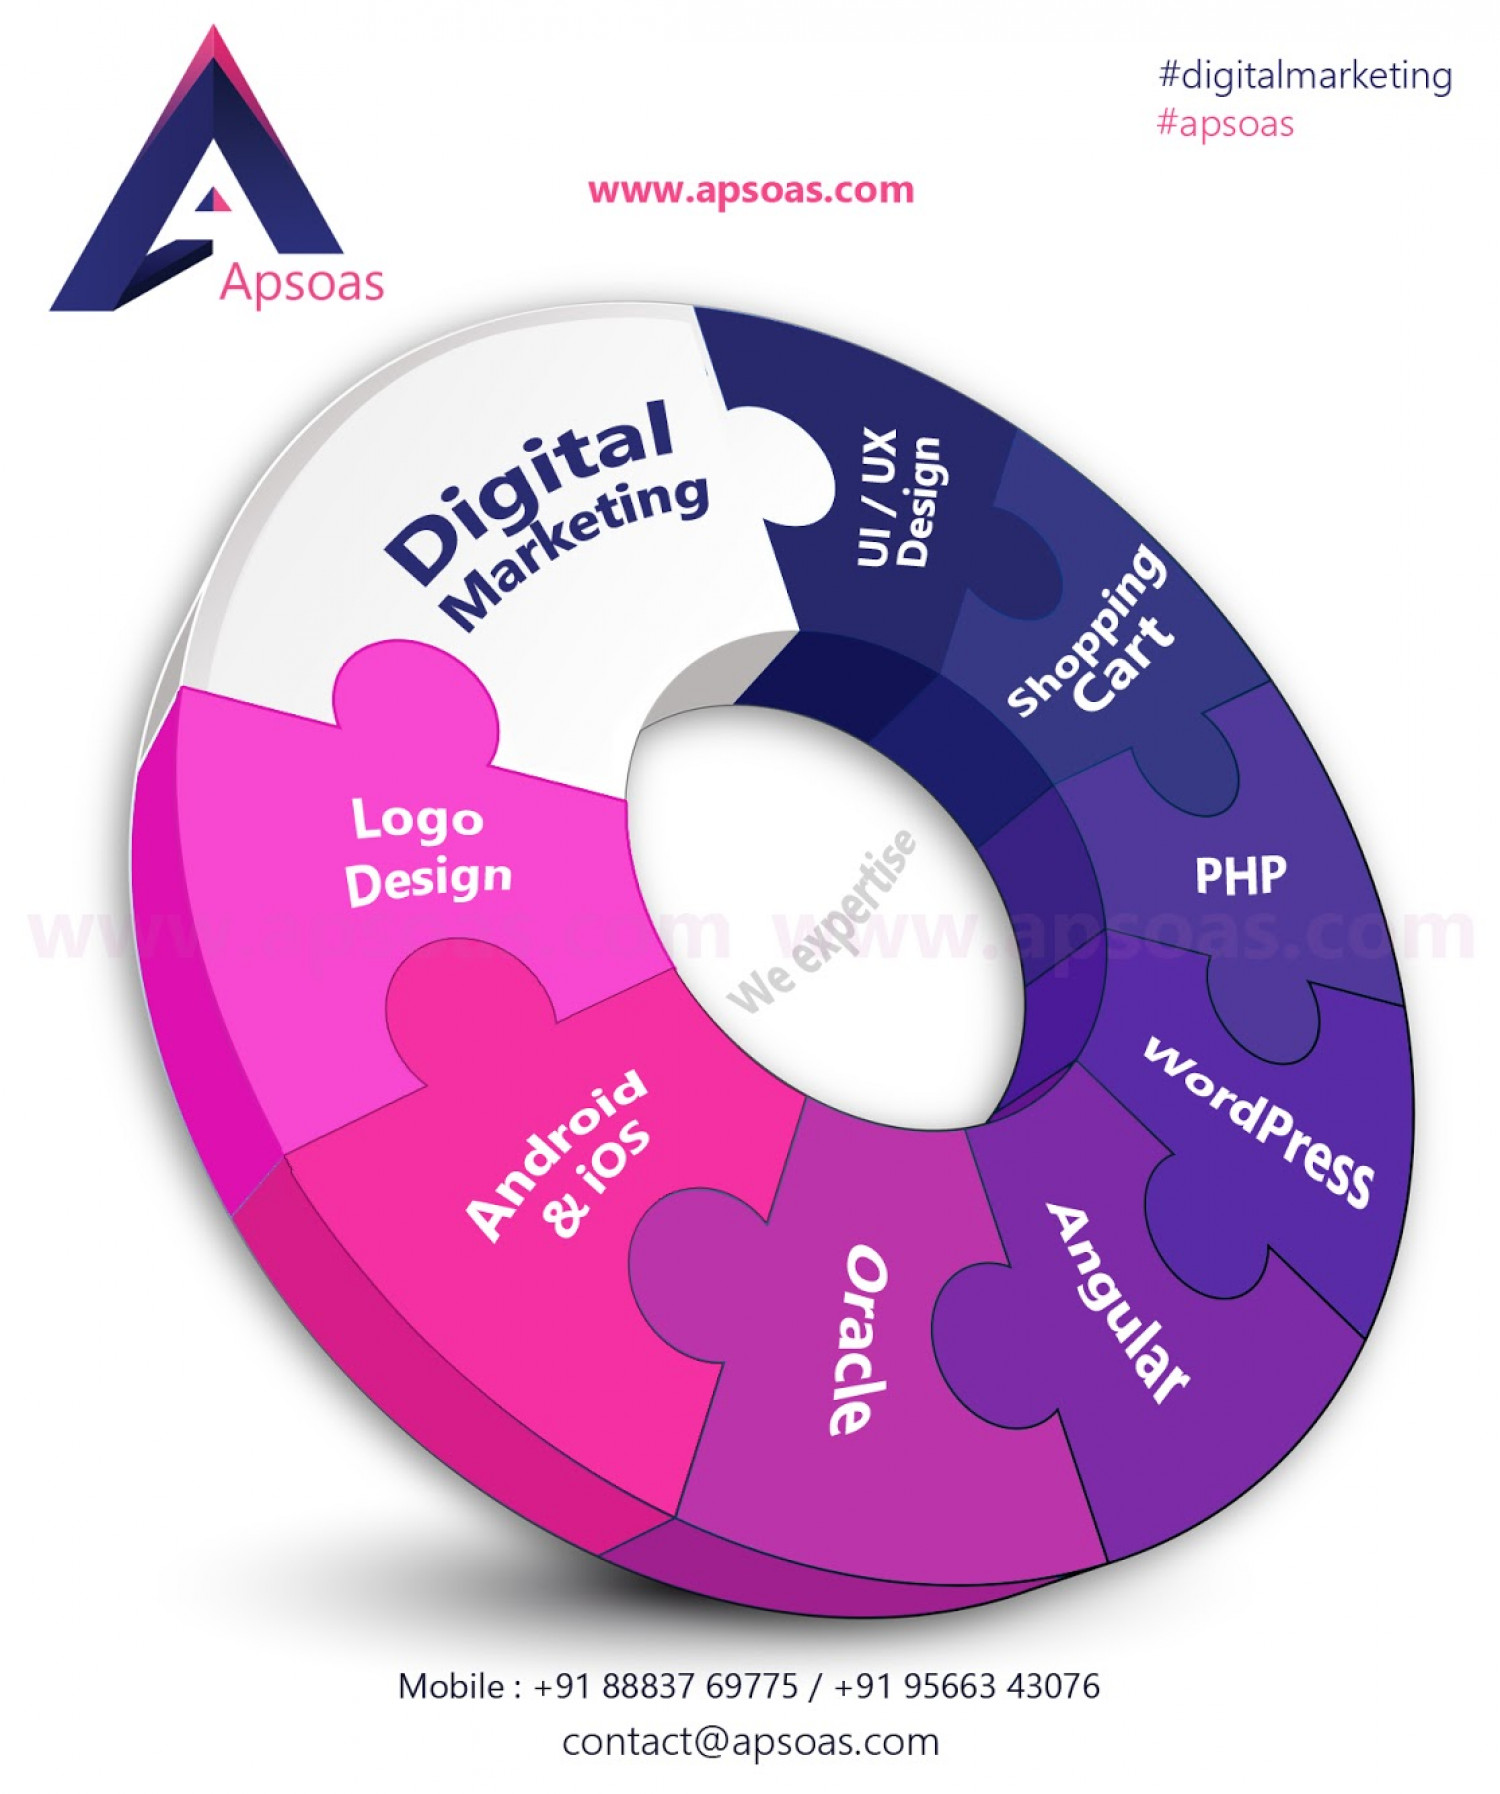 Digital Marketing and Web Development Services Infographic